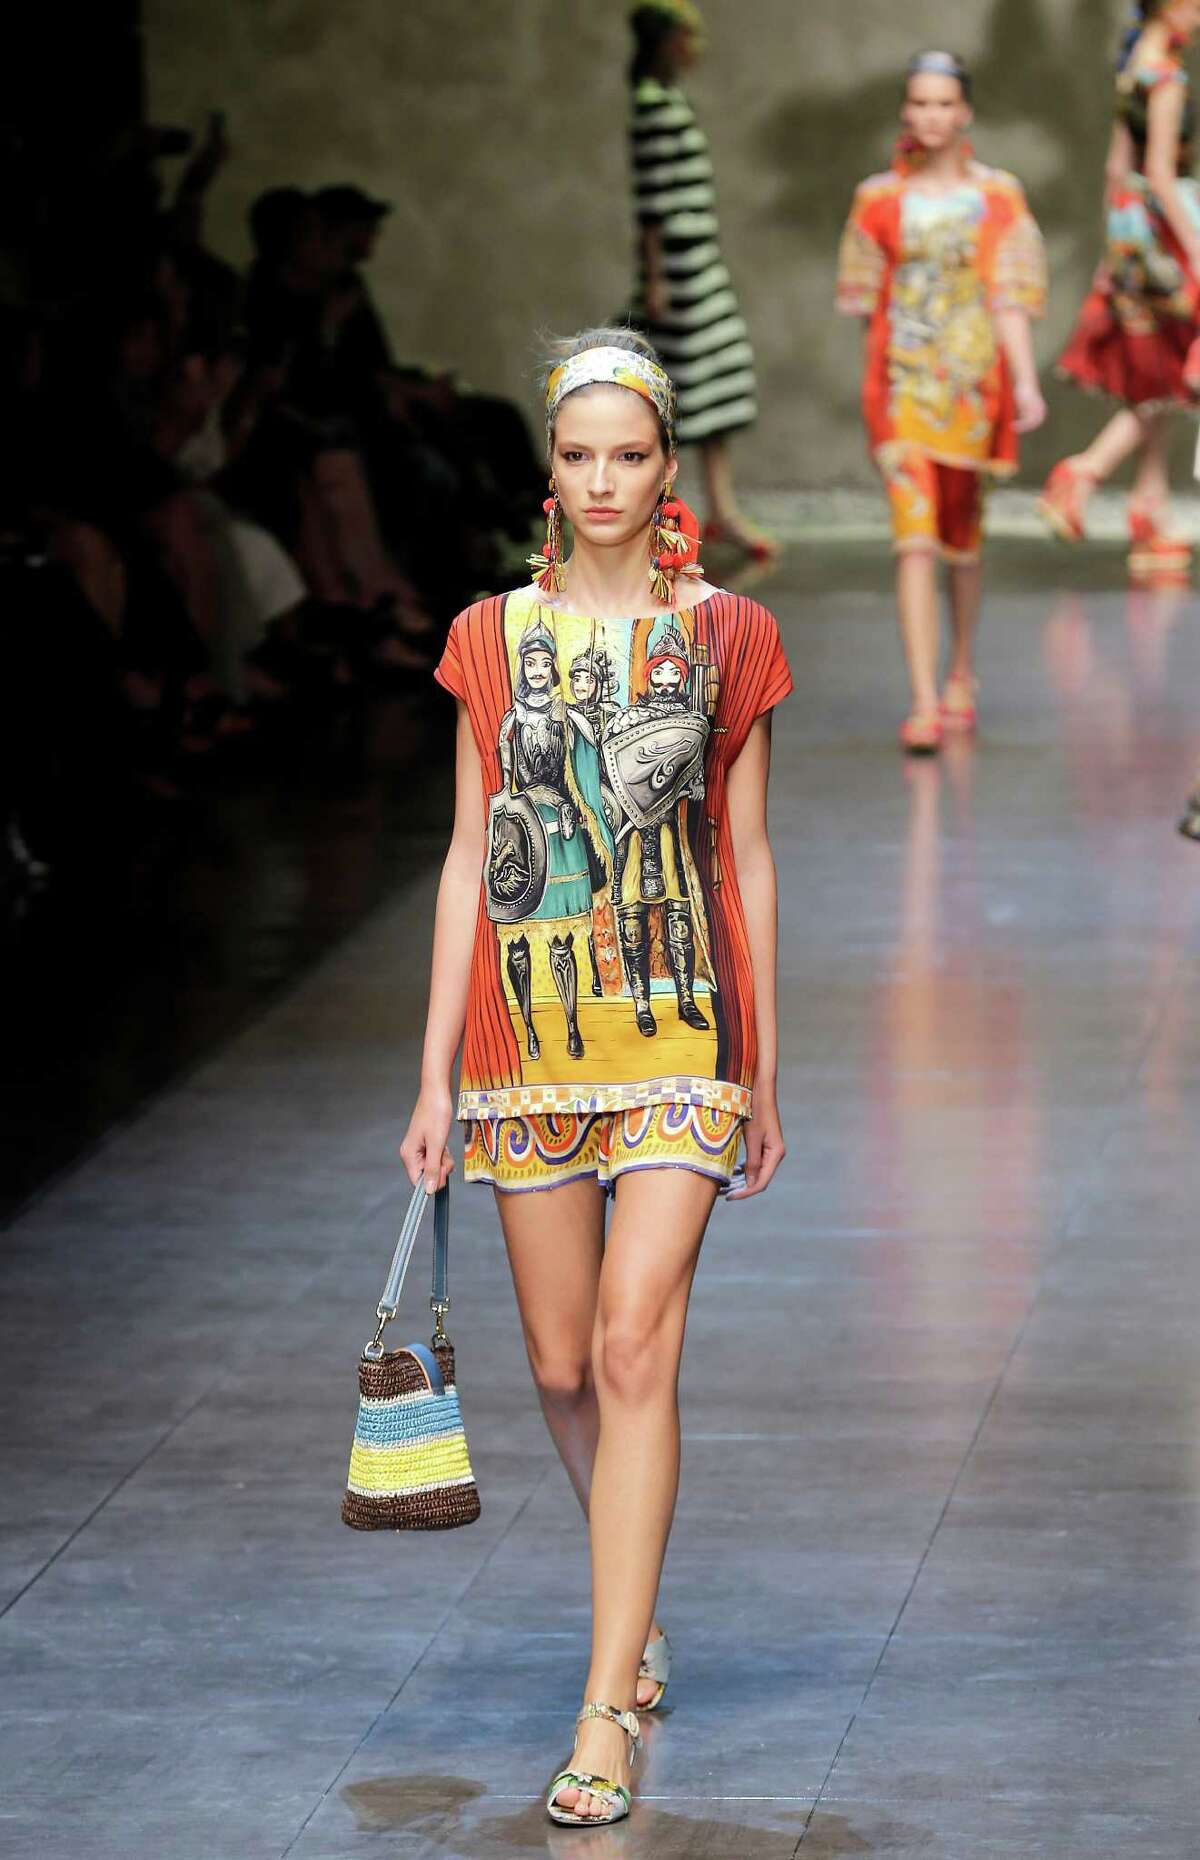 A model wears a creation as part of the Dolce & Gabbana women's spring/summer 2013 fashion collection, during Milan Fashion Week in Milan, Italy. This year's event ran Sept. 19-25.